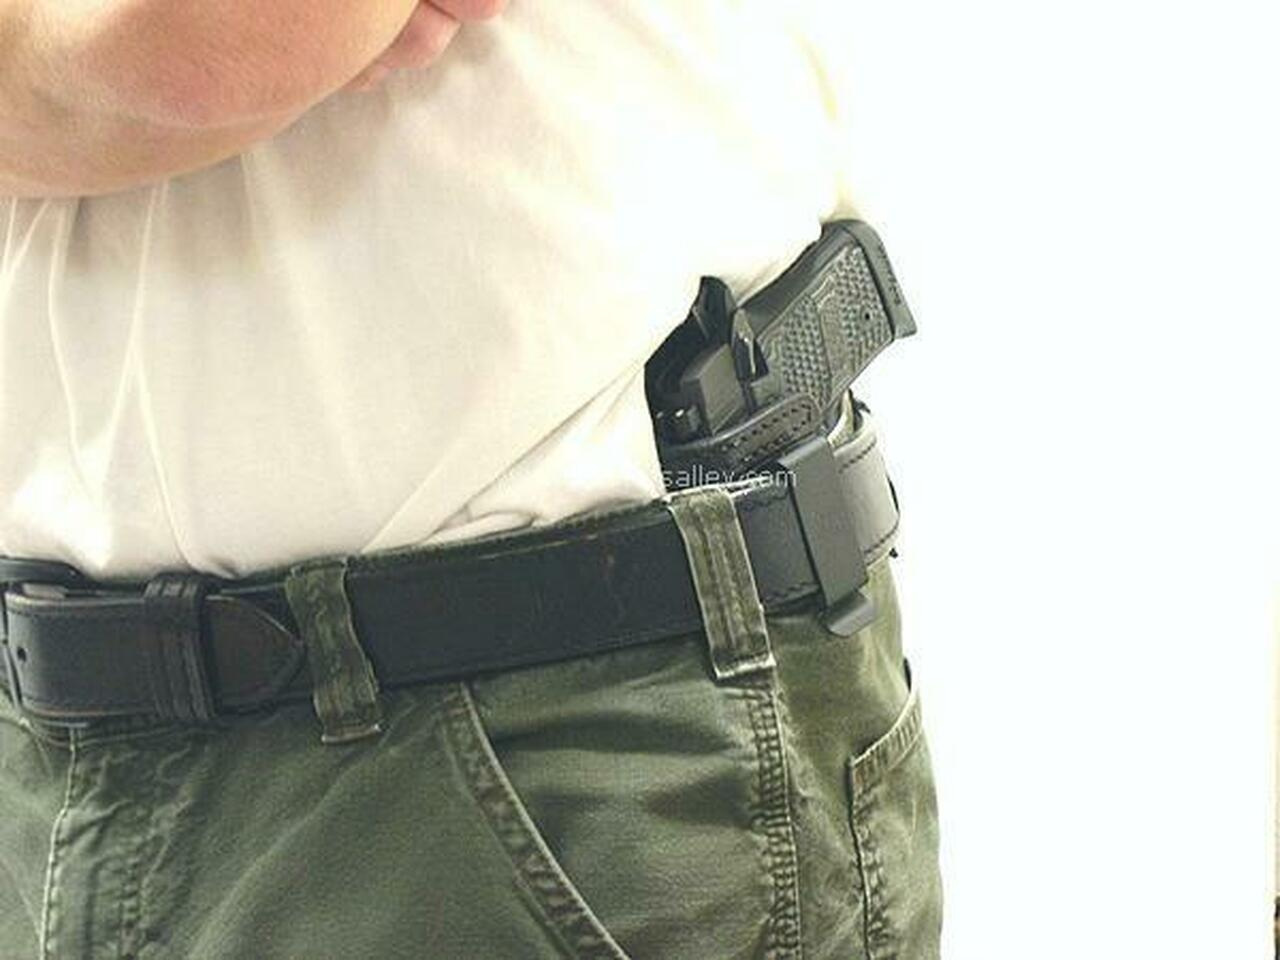 Profile View - LH Model Shown on the Belt with a Sig P238 for Demonstration Purposes